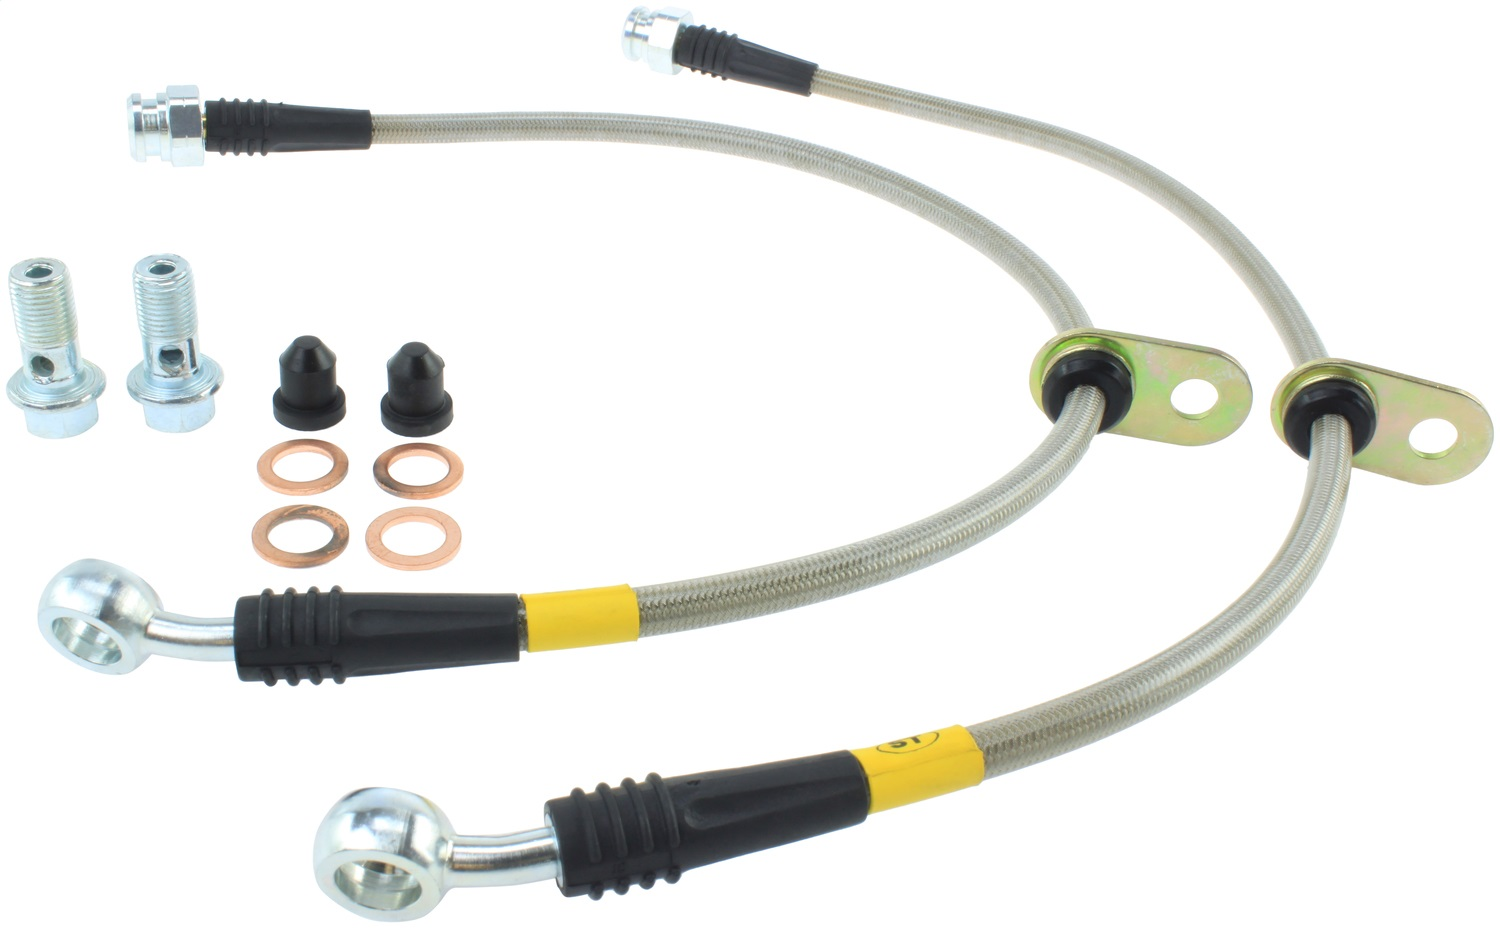 StopTech 950.40507 Stainless Steel Braided Brake Hose Kit Fits 97-01 Prelude